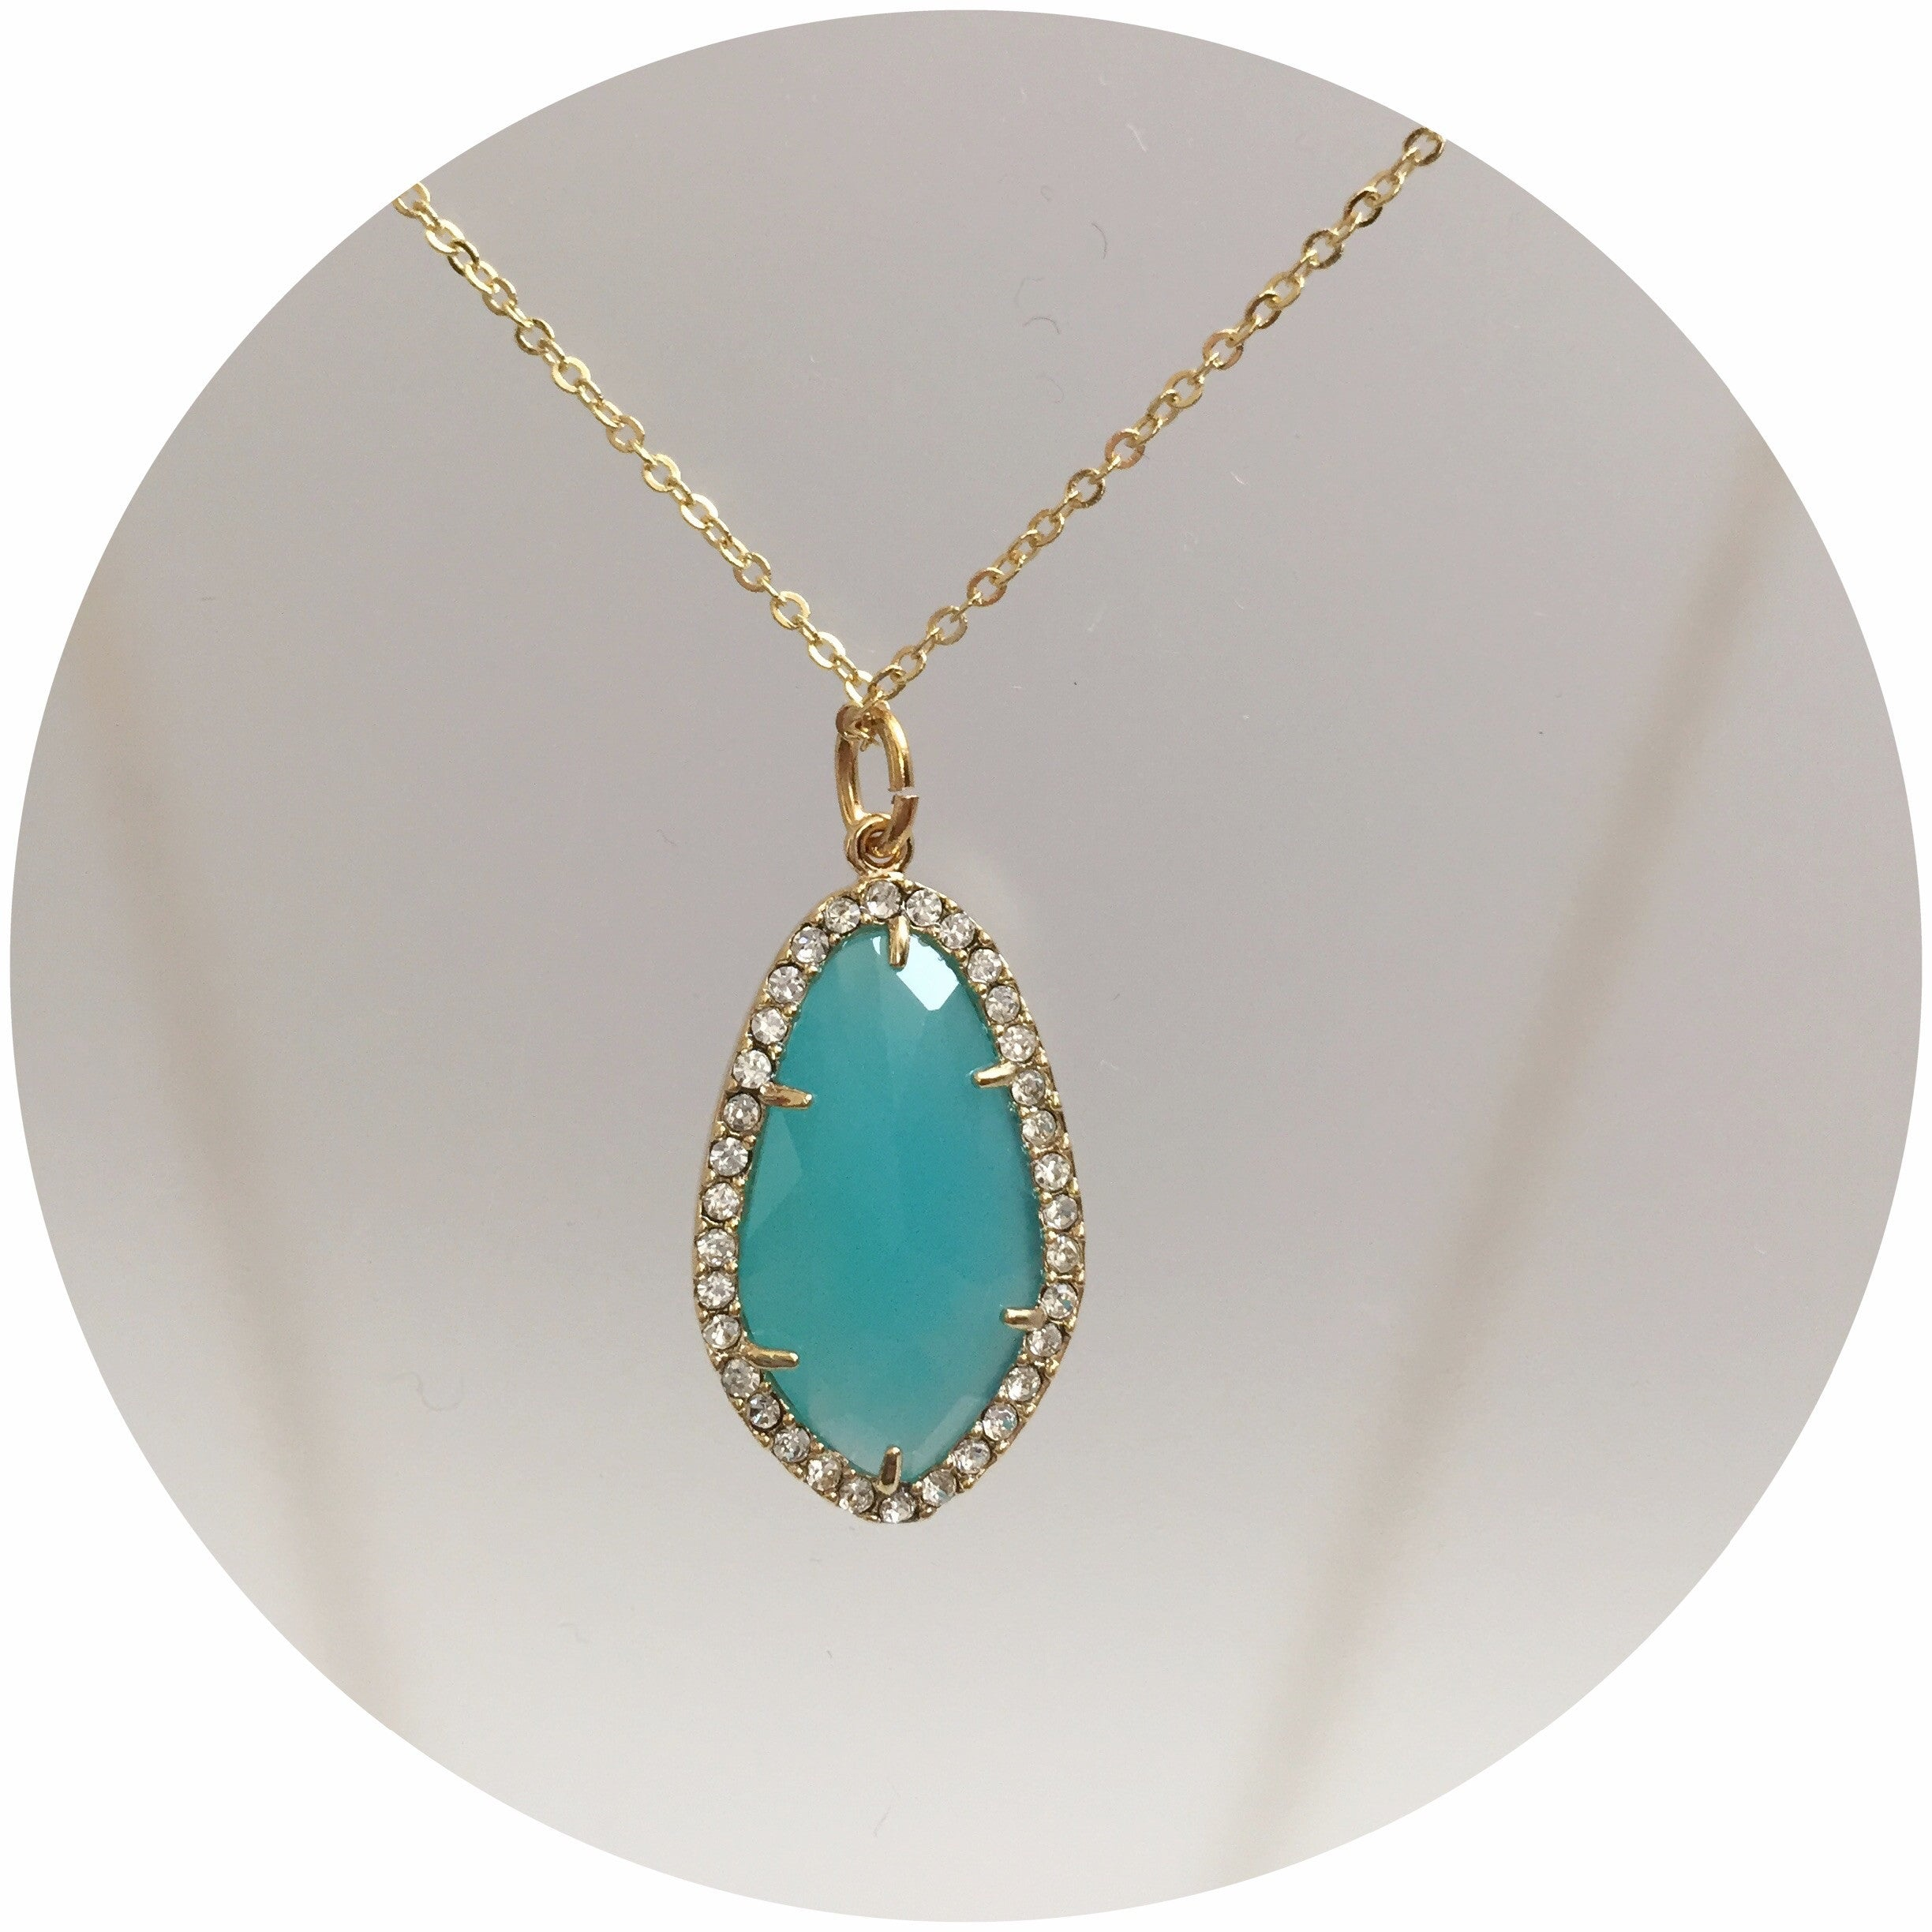 Pavé Aqua Glass Necklace